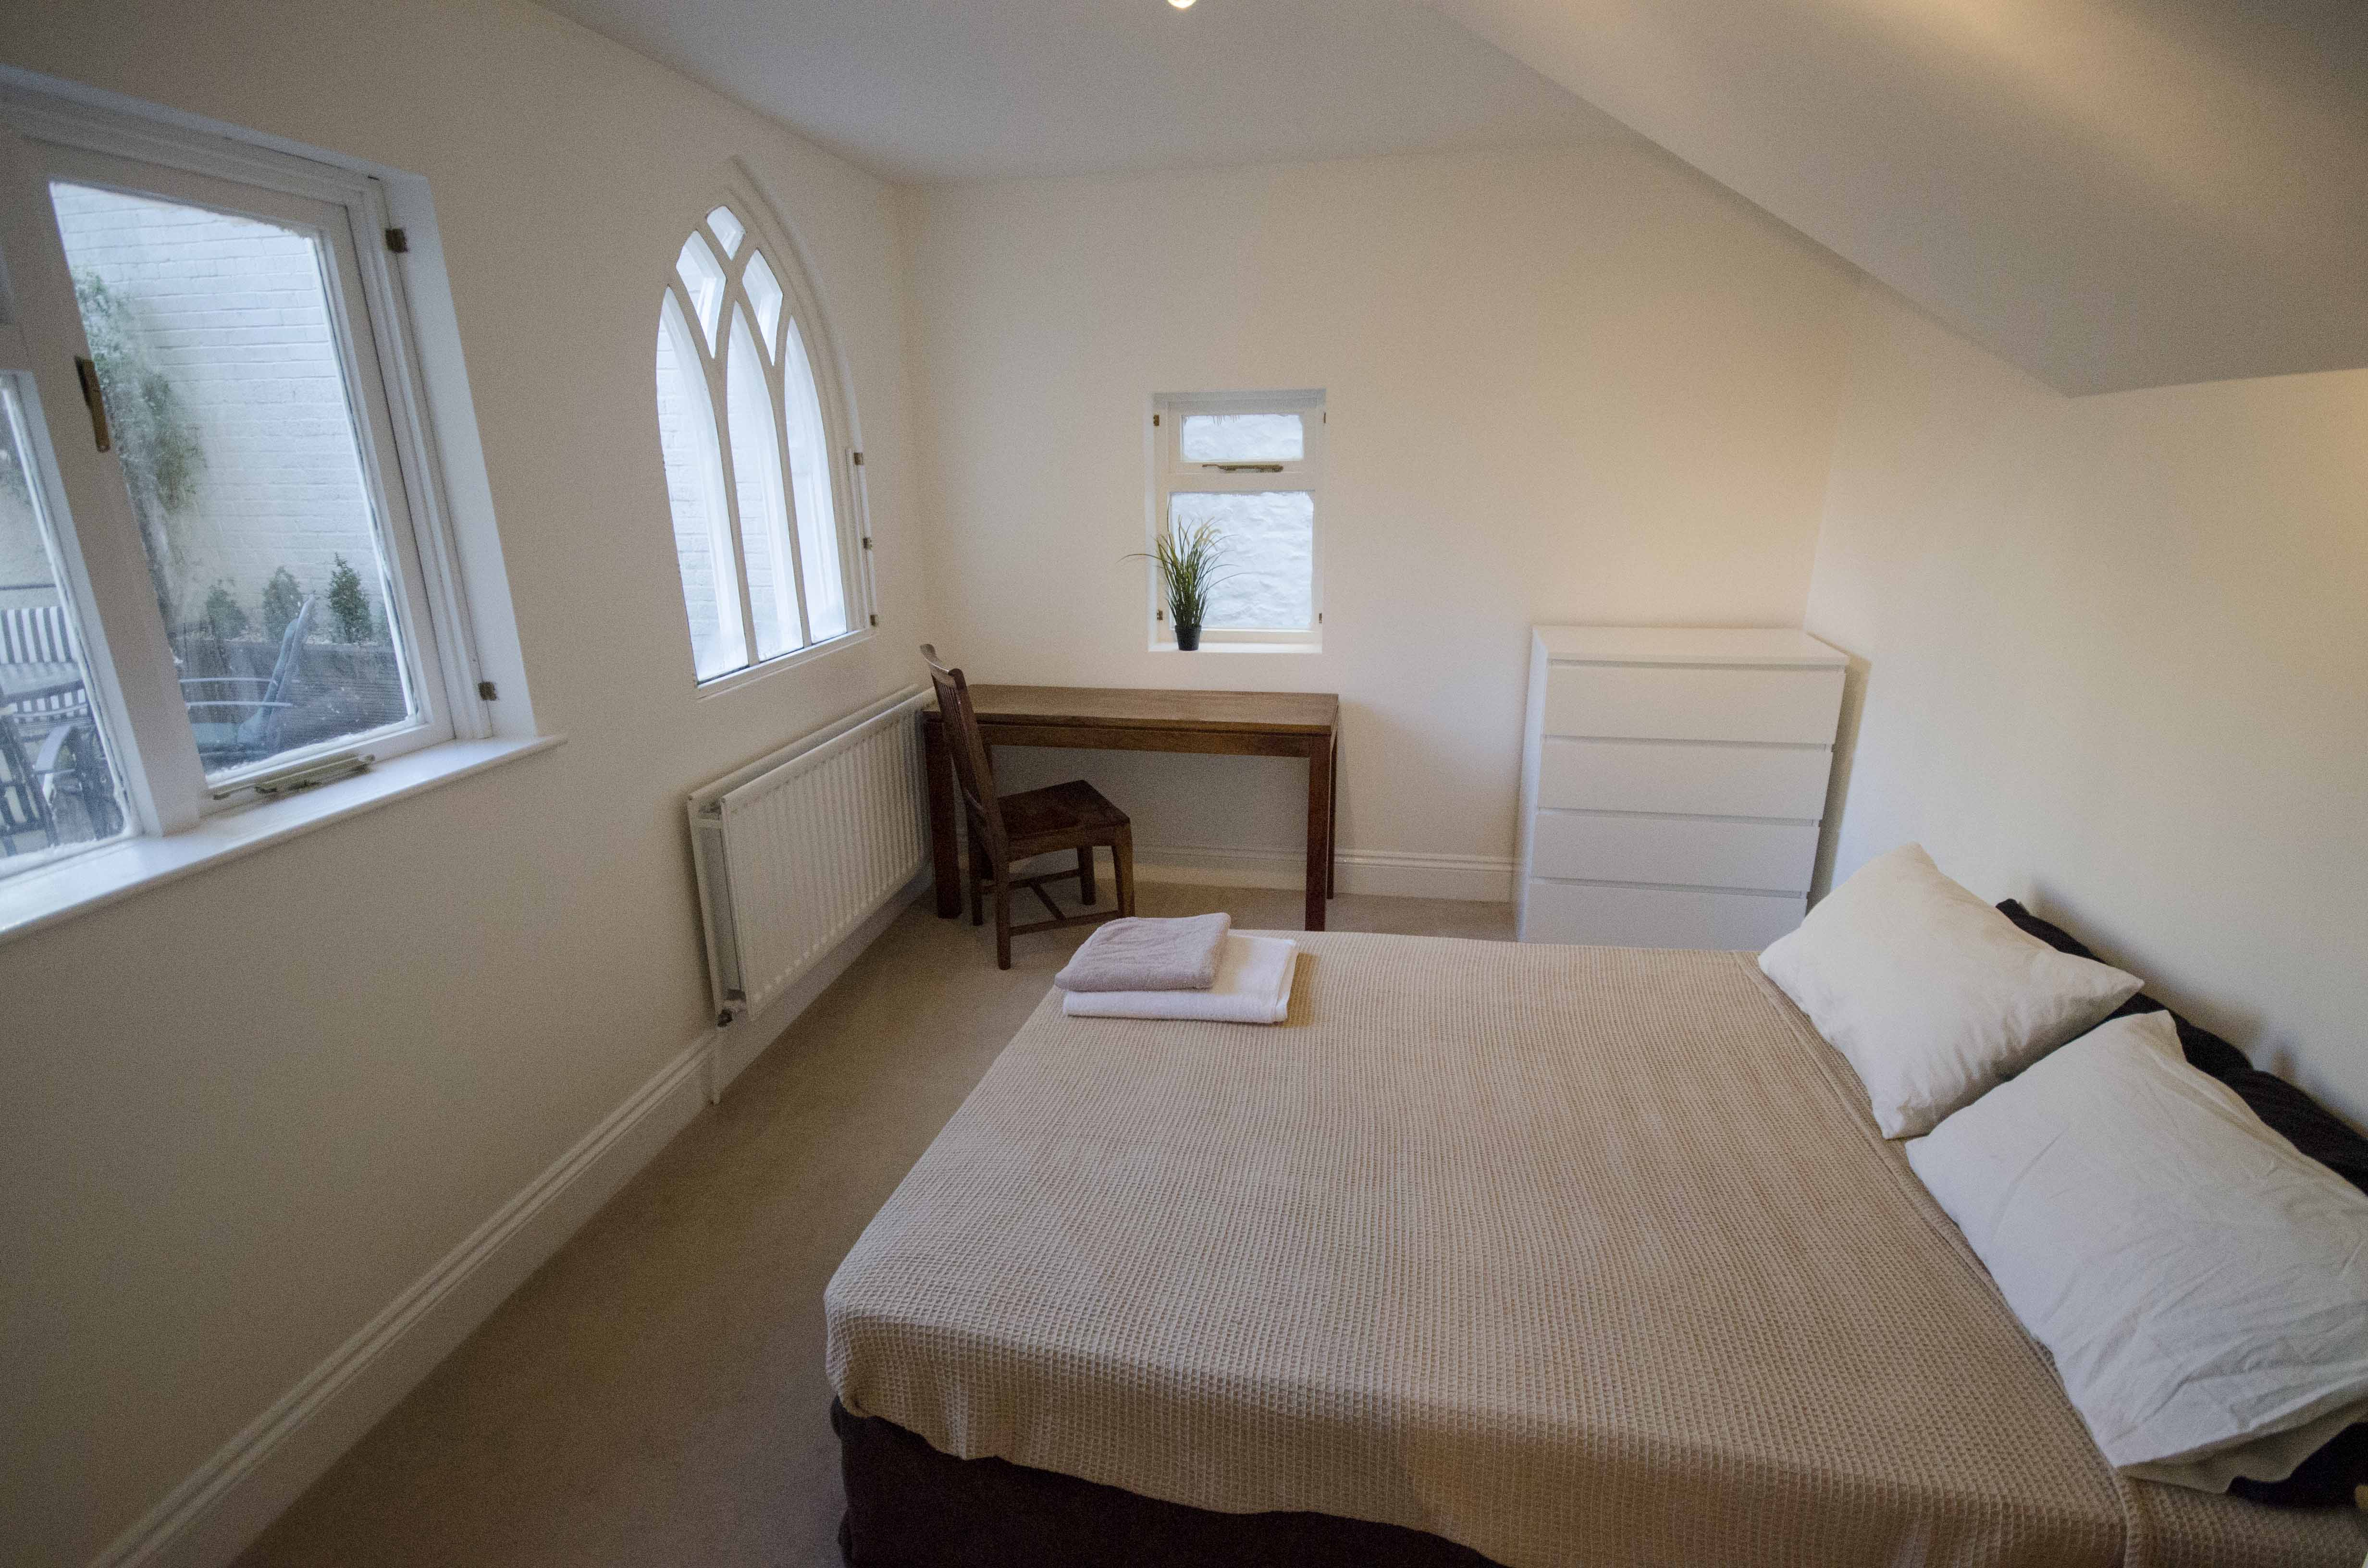 Property To Rent In Bristol Private Landlords